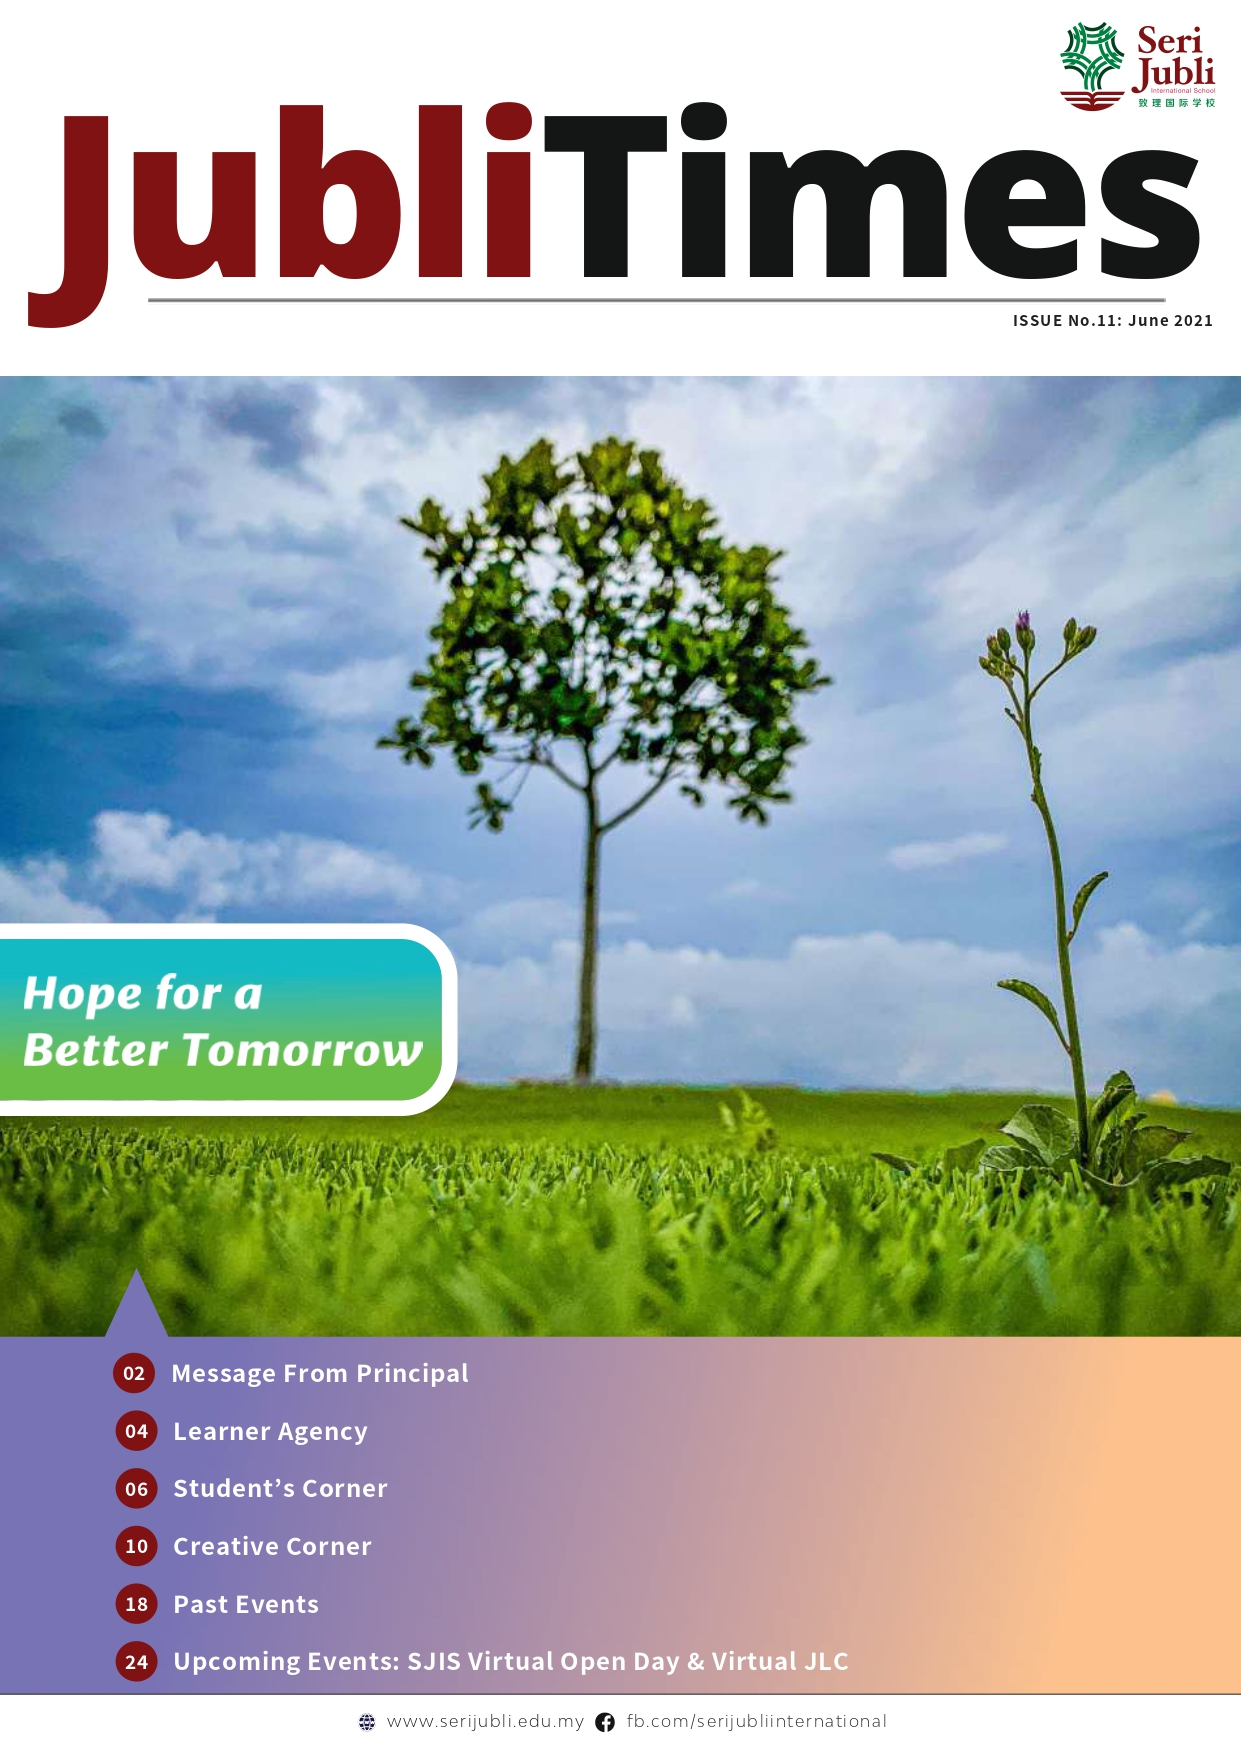 Jubli Times Issue No. 11 - June 2021 cover